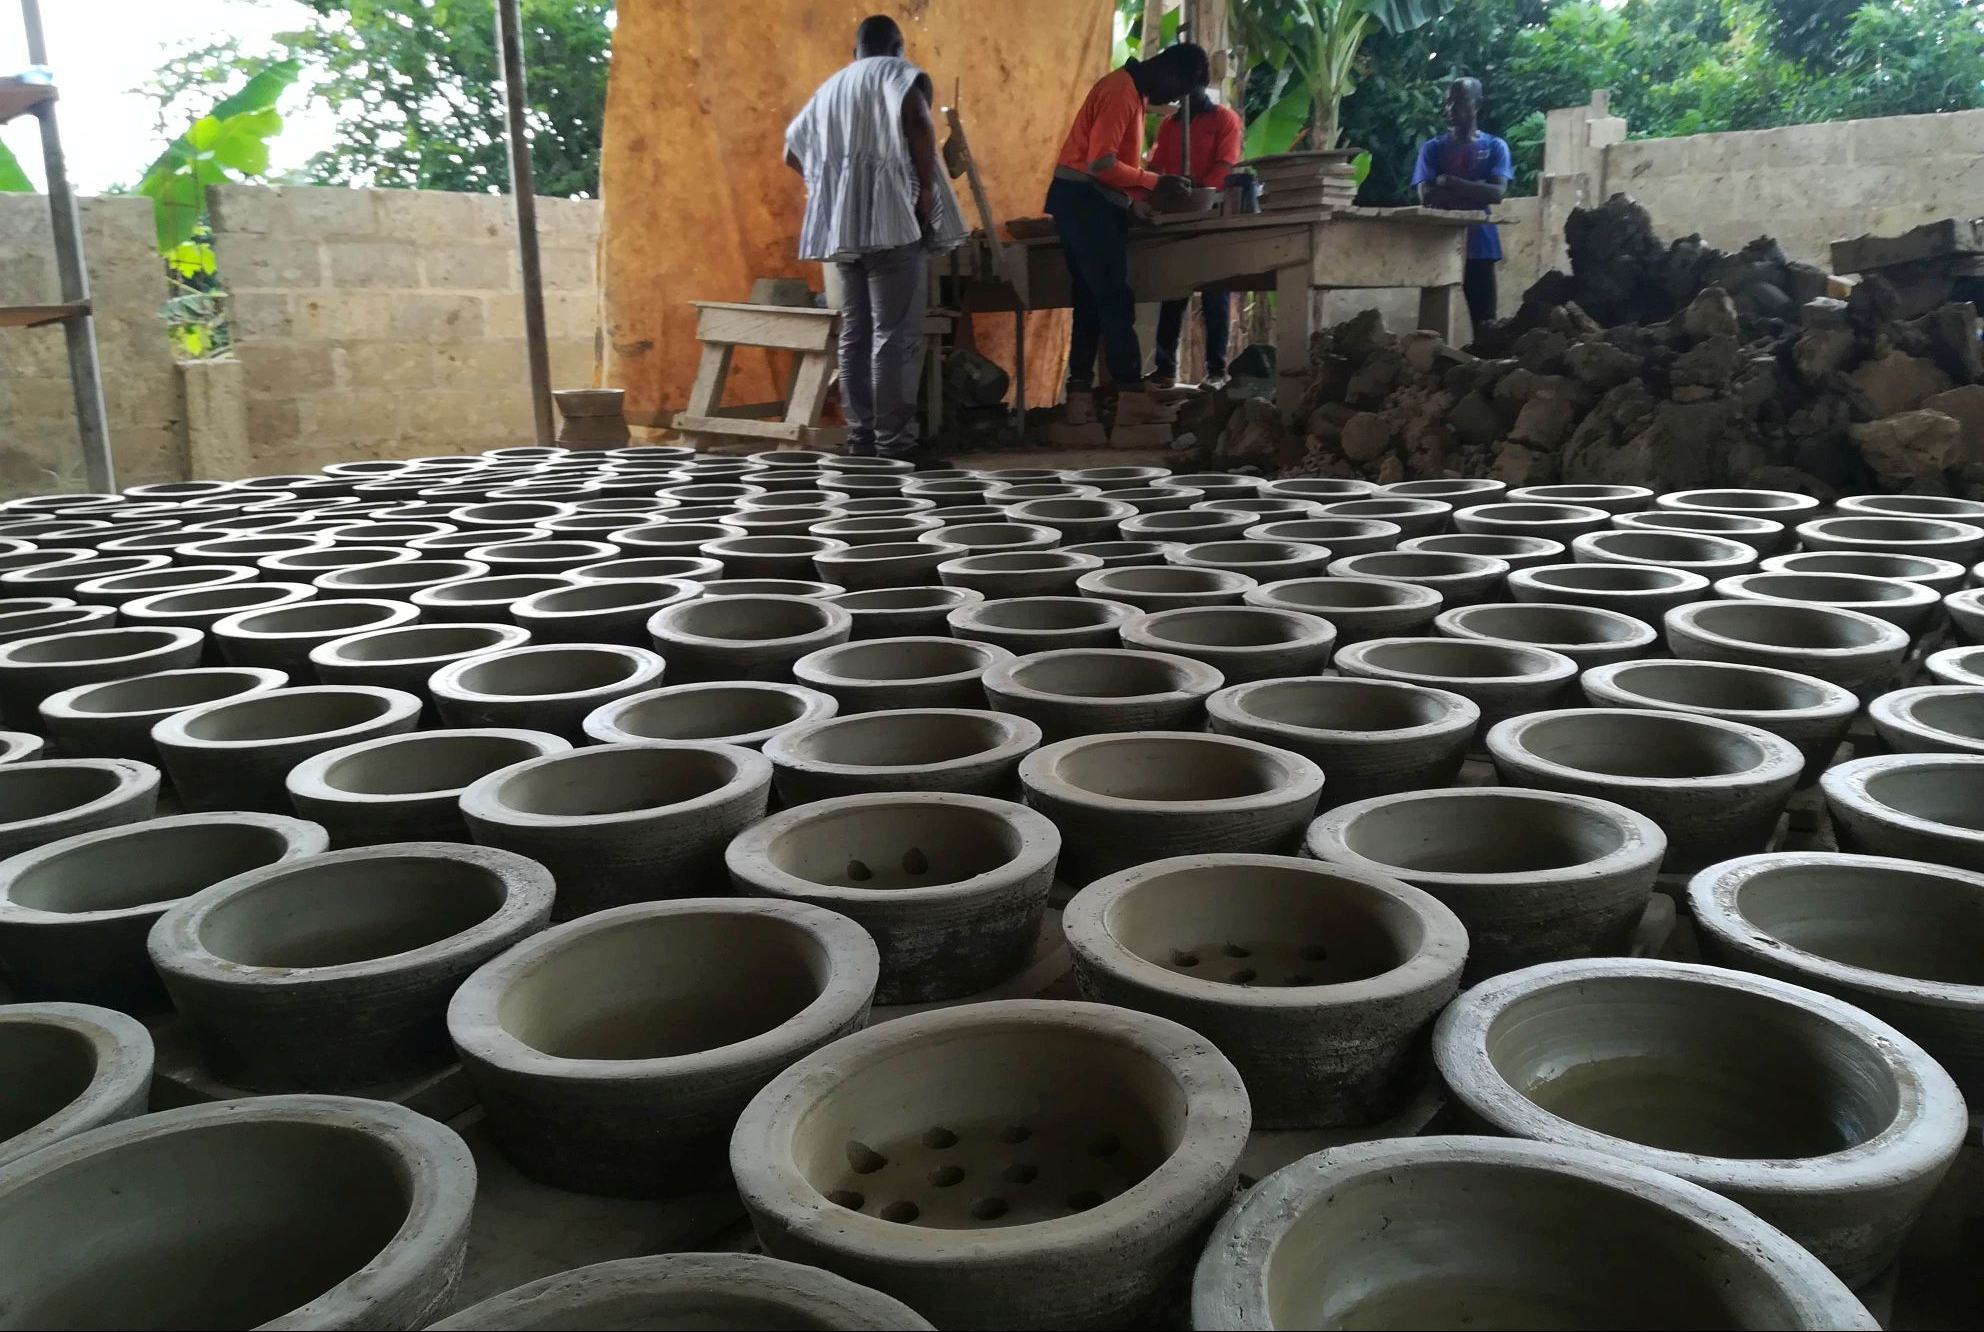 Production of improved cookstoves in Kumasi from the raw material of sheet metal and clay